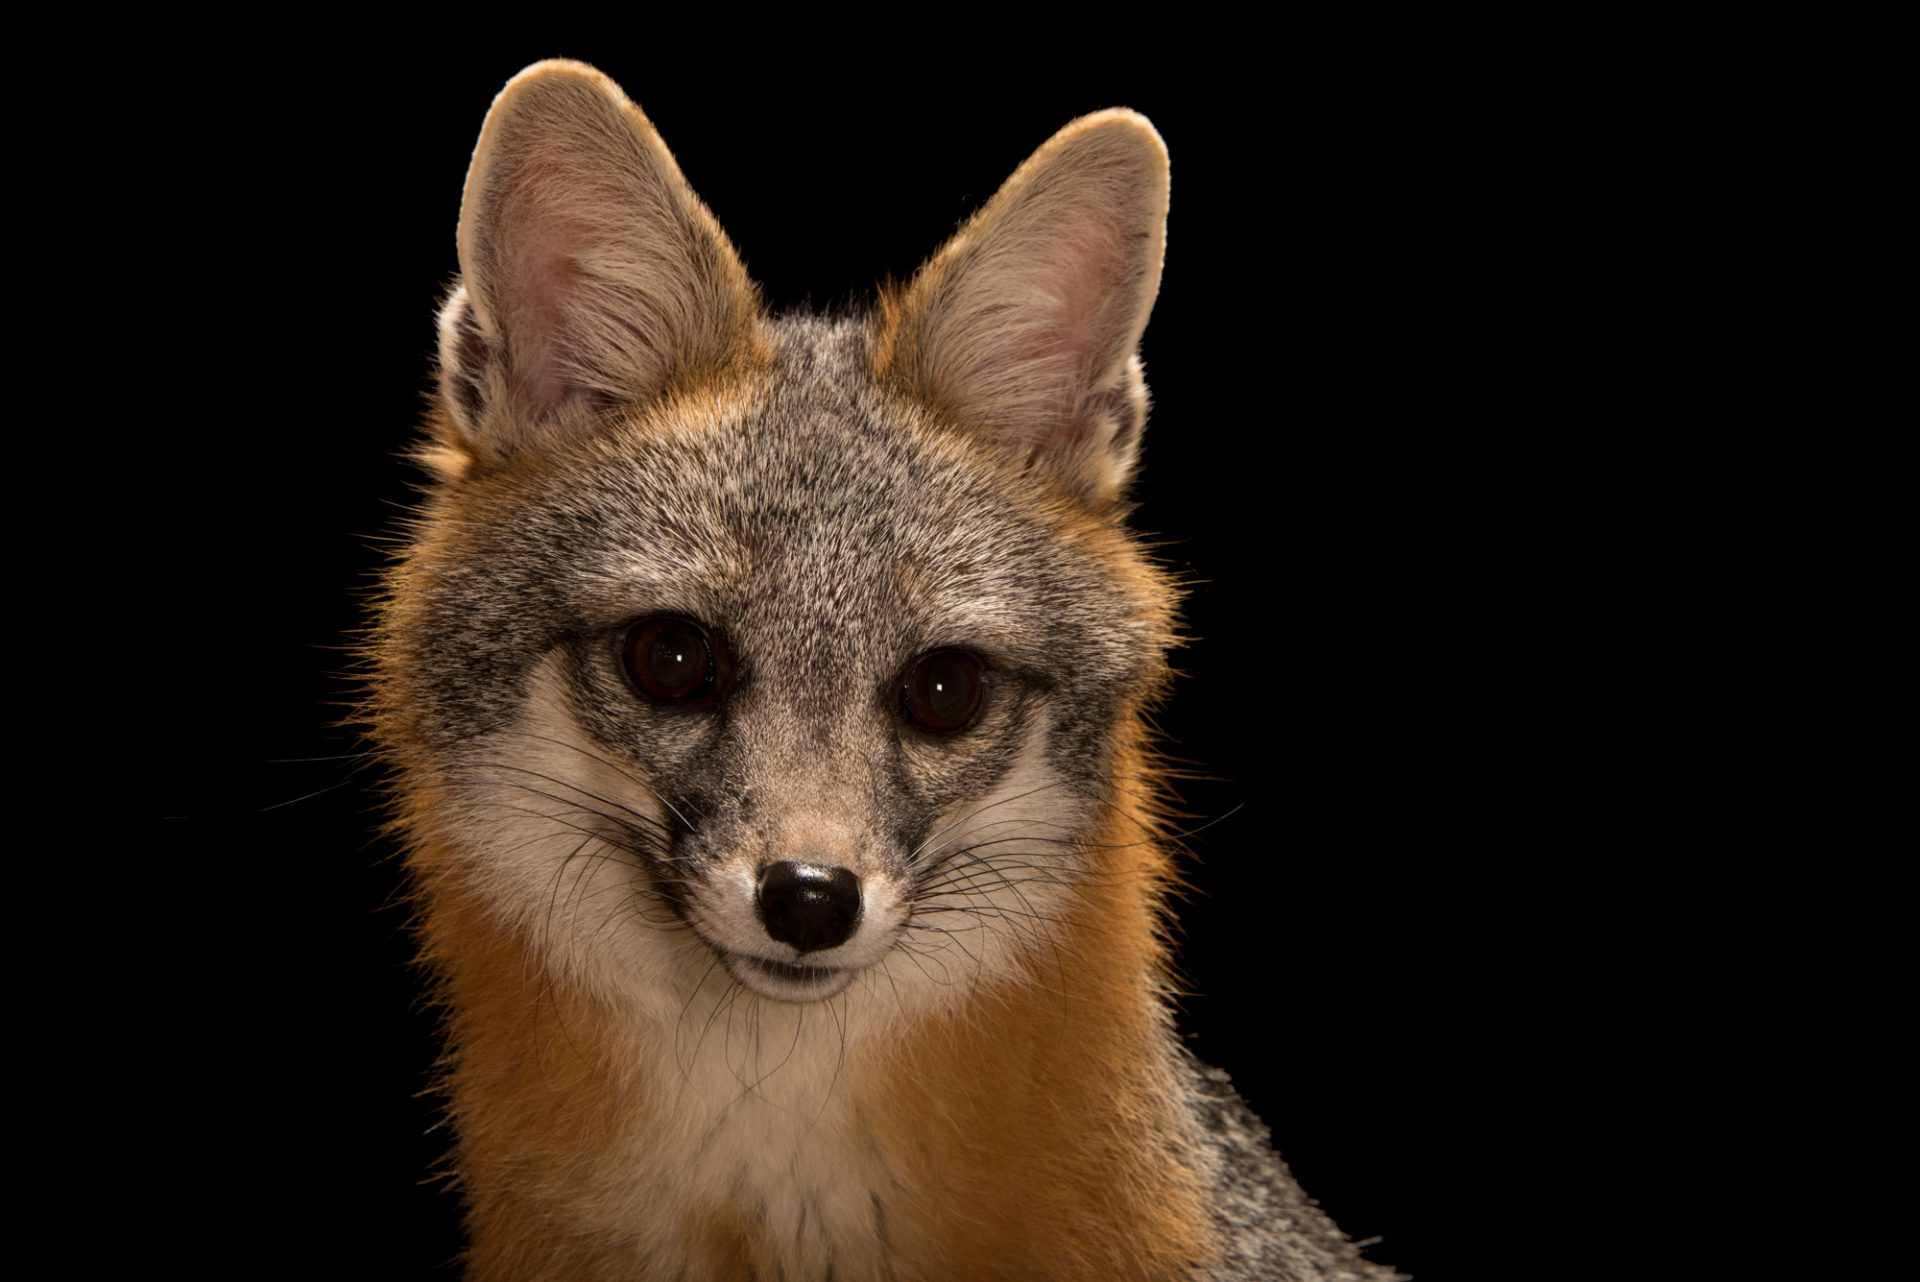 Photo: Southwestern gray fox (Urocyon cinereoargenteus scottii) at Southwest Wildlife Conservation Center in Scottsdale, AZ. This animal is named Frank.